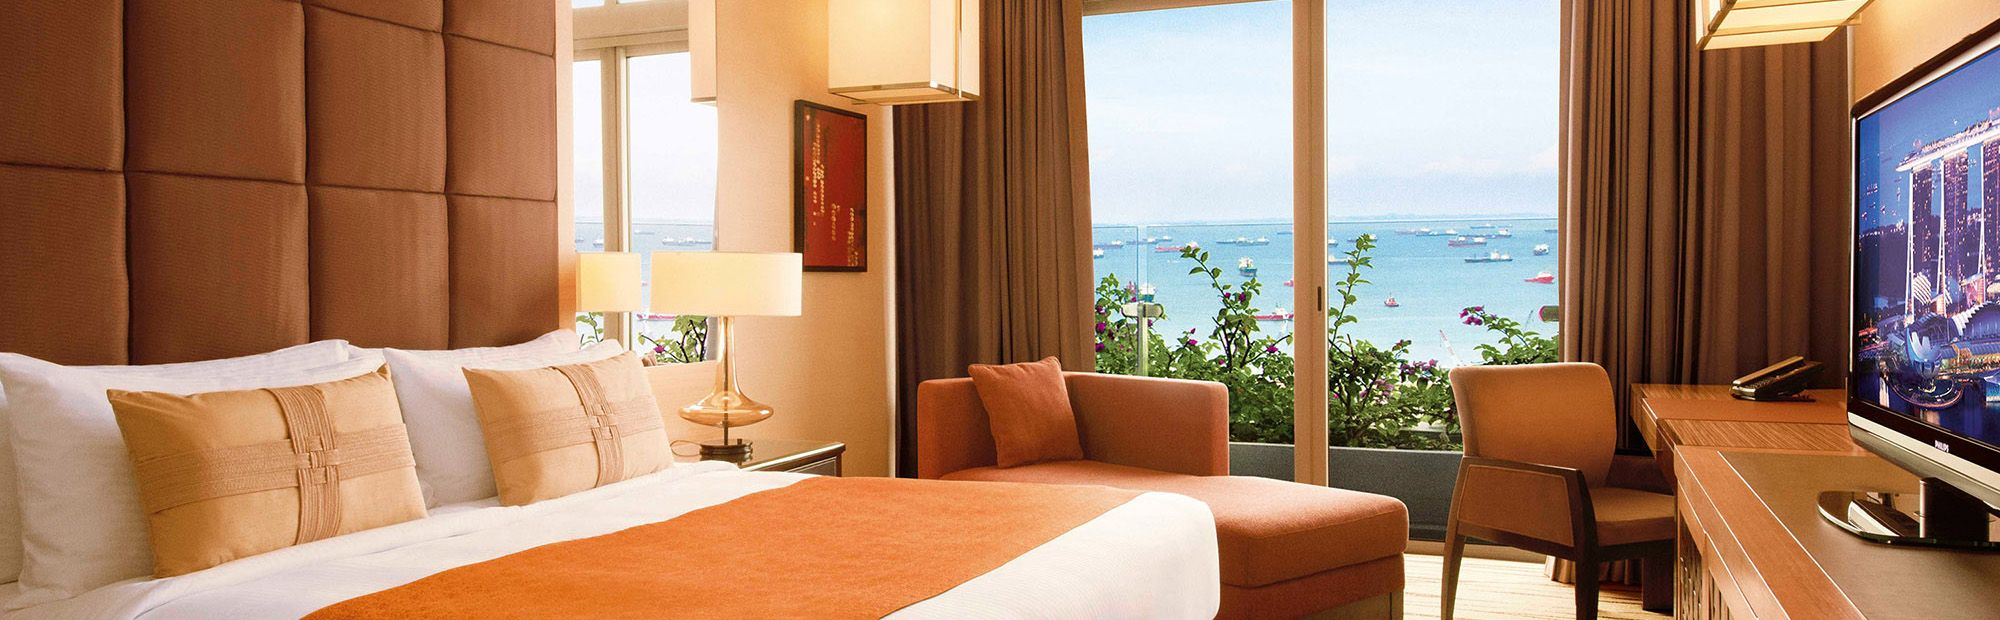 deluxe room at marina bay sands hotel 39 square metres with calming contemporary dcor